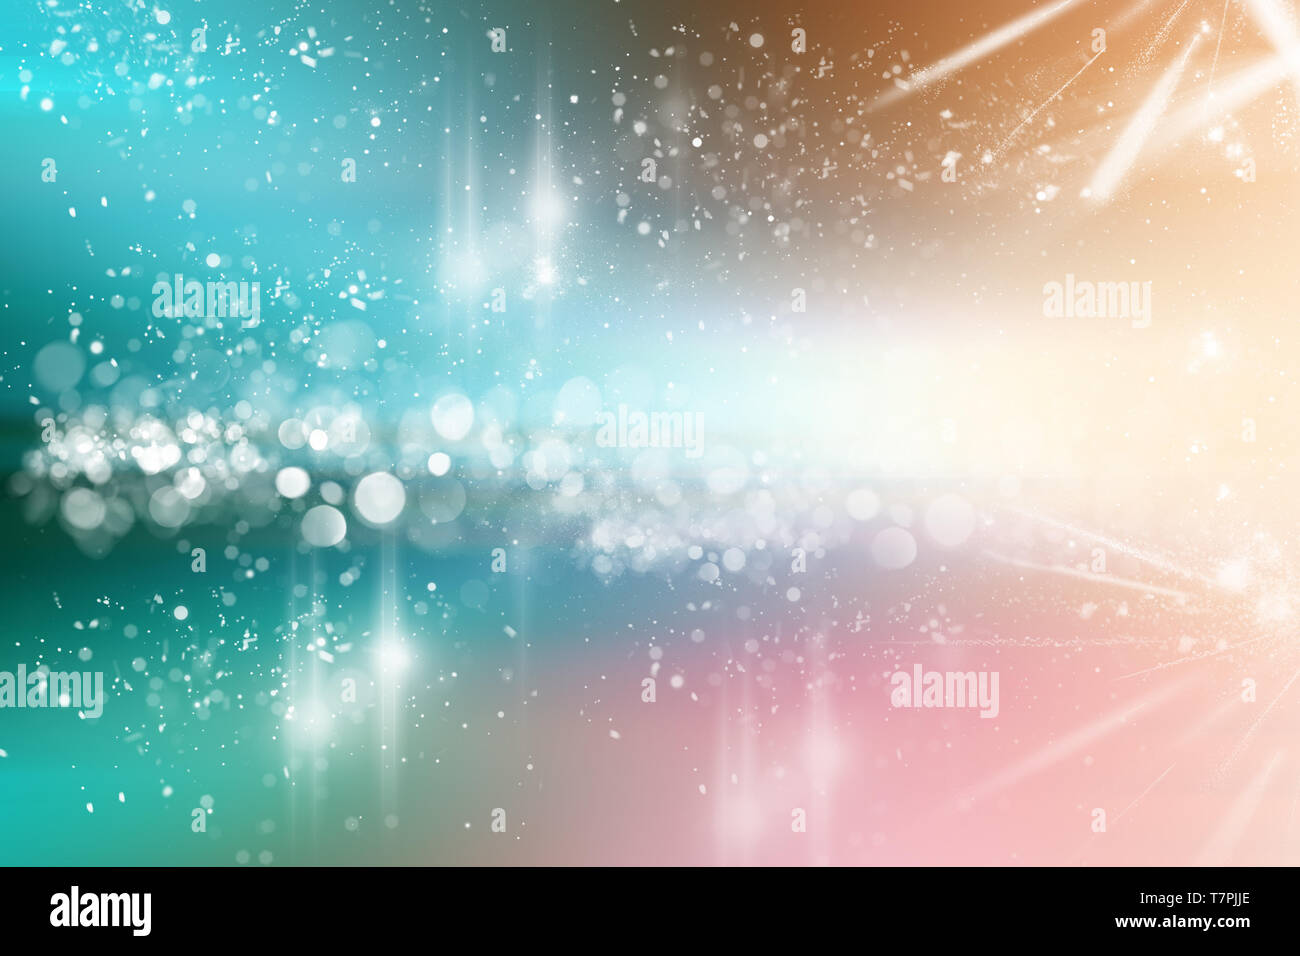 Blue Bokeh Abstract Light Backgrounds Stock Photo Alamy